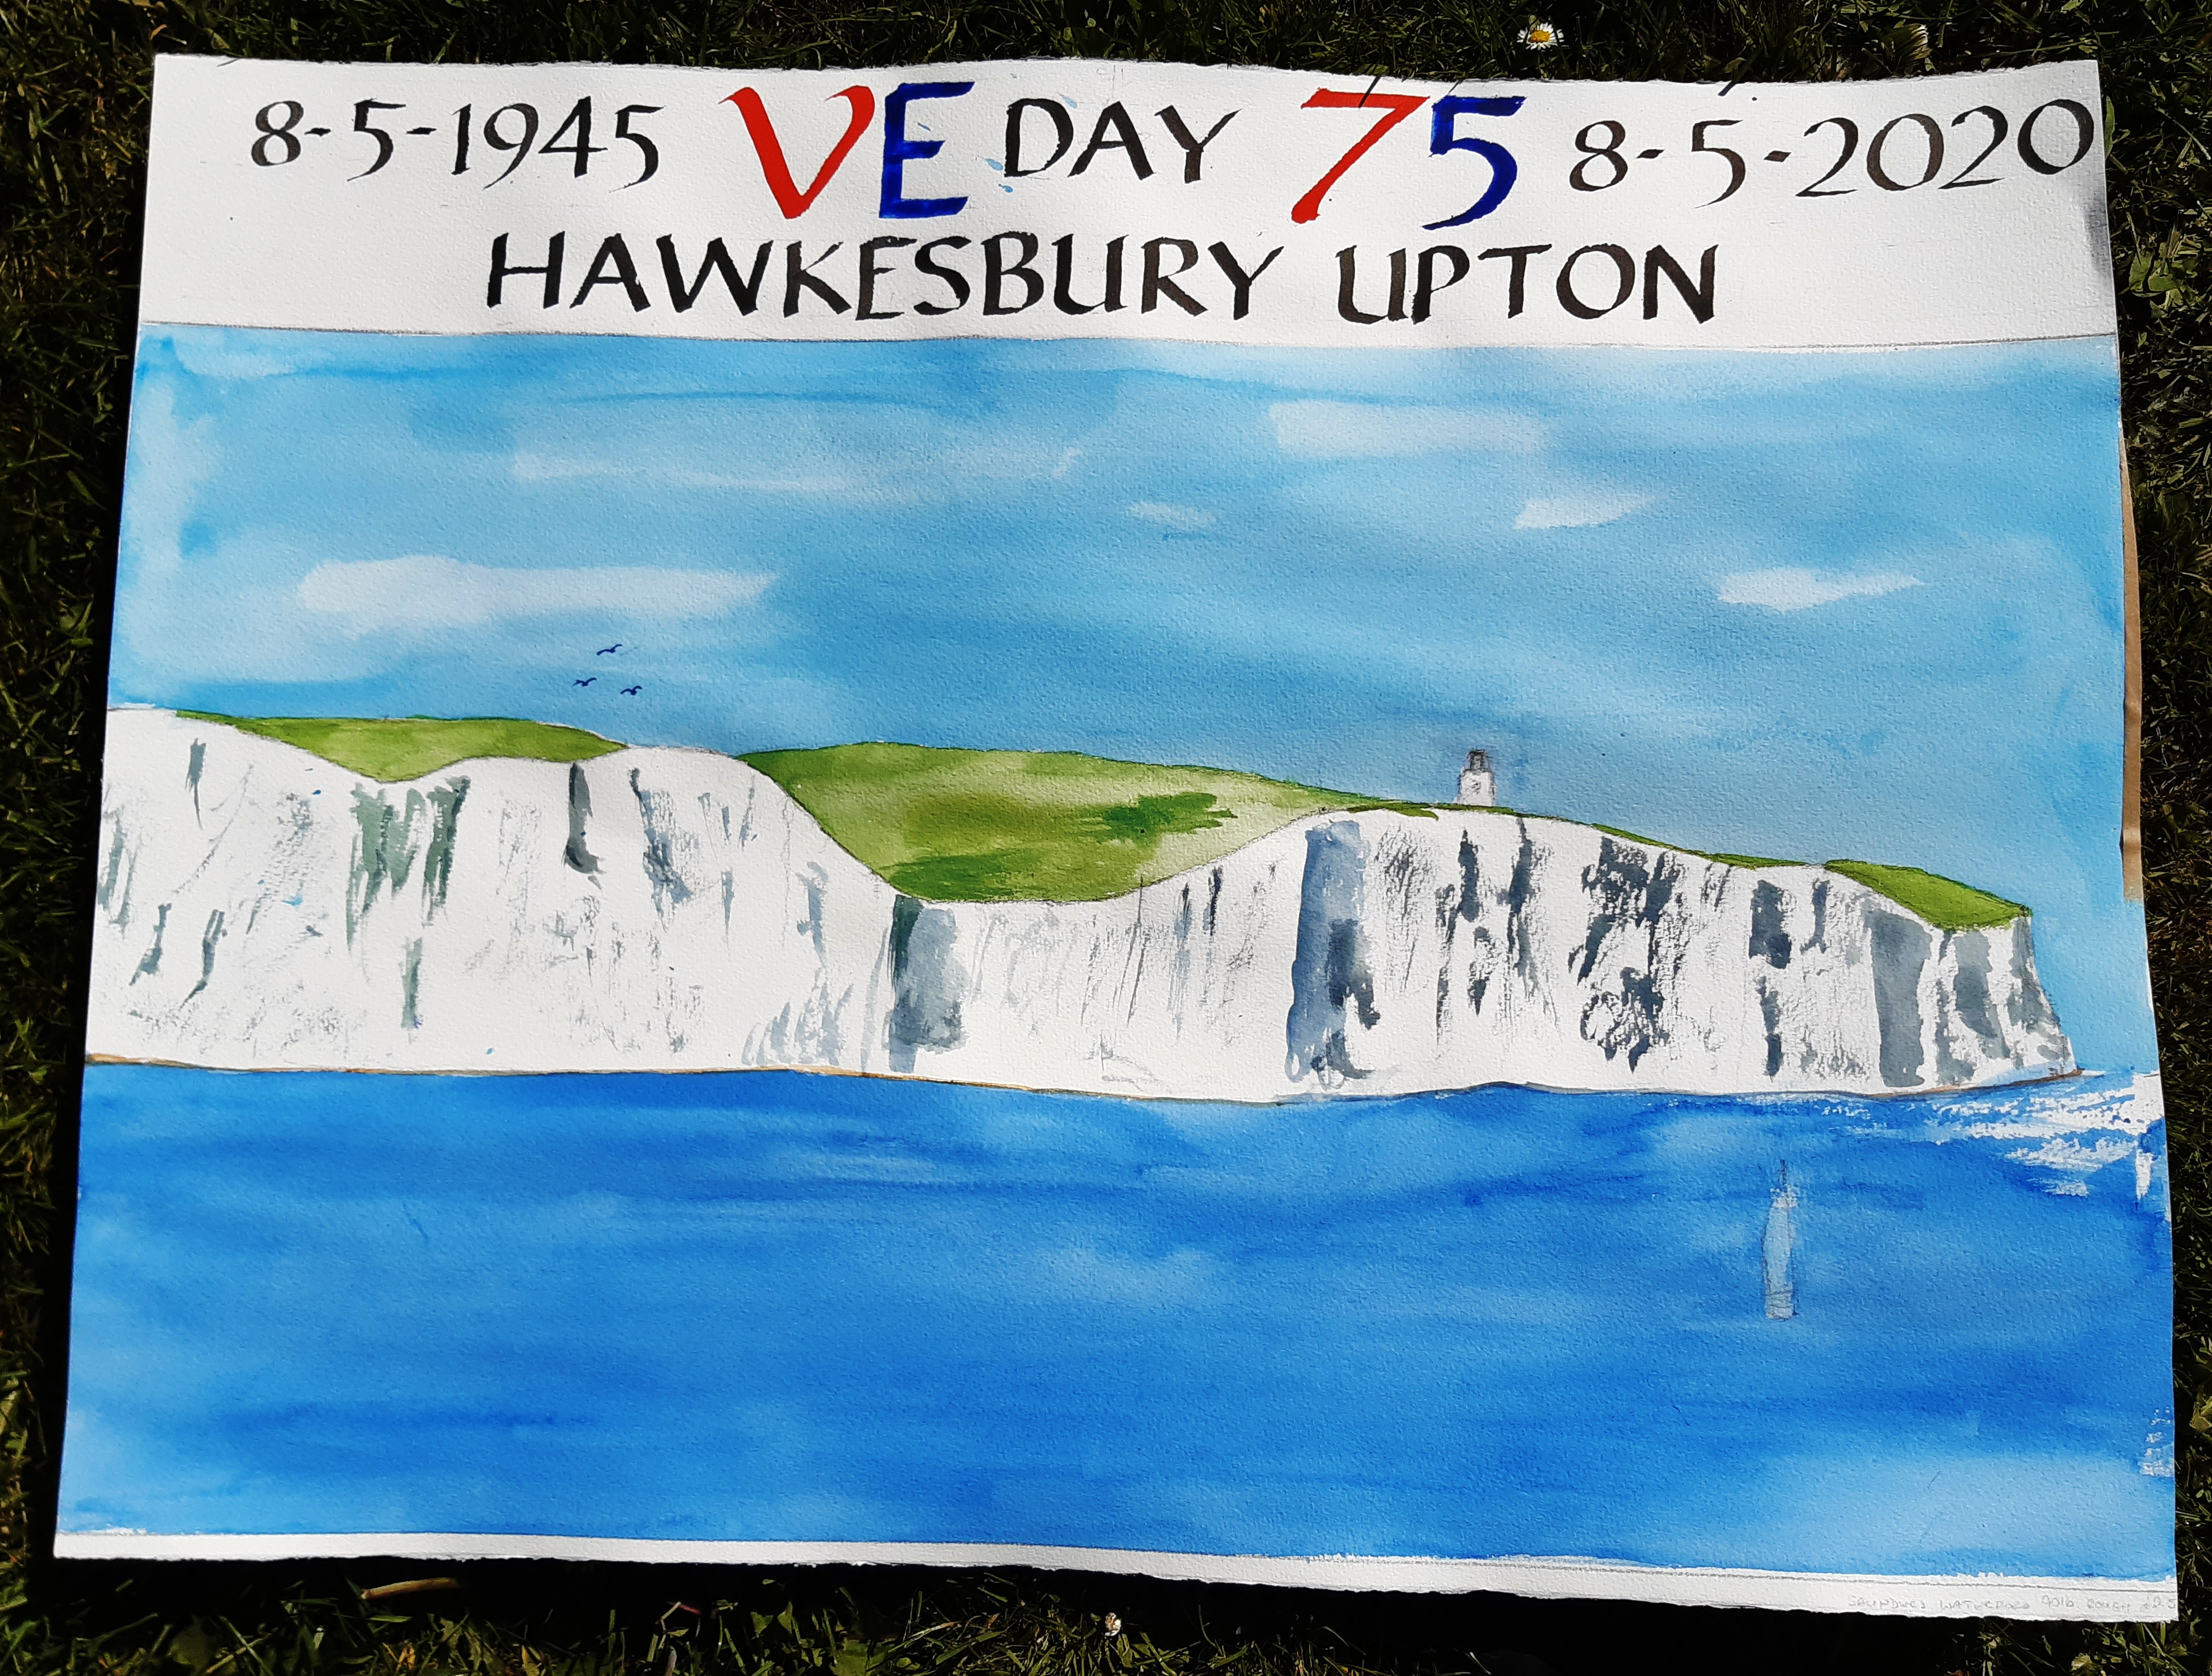 painting of White Cliffs of Dover with VE Day dates and Hawkesbury Upton